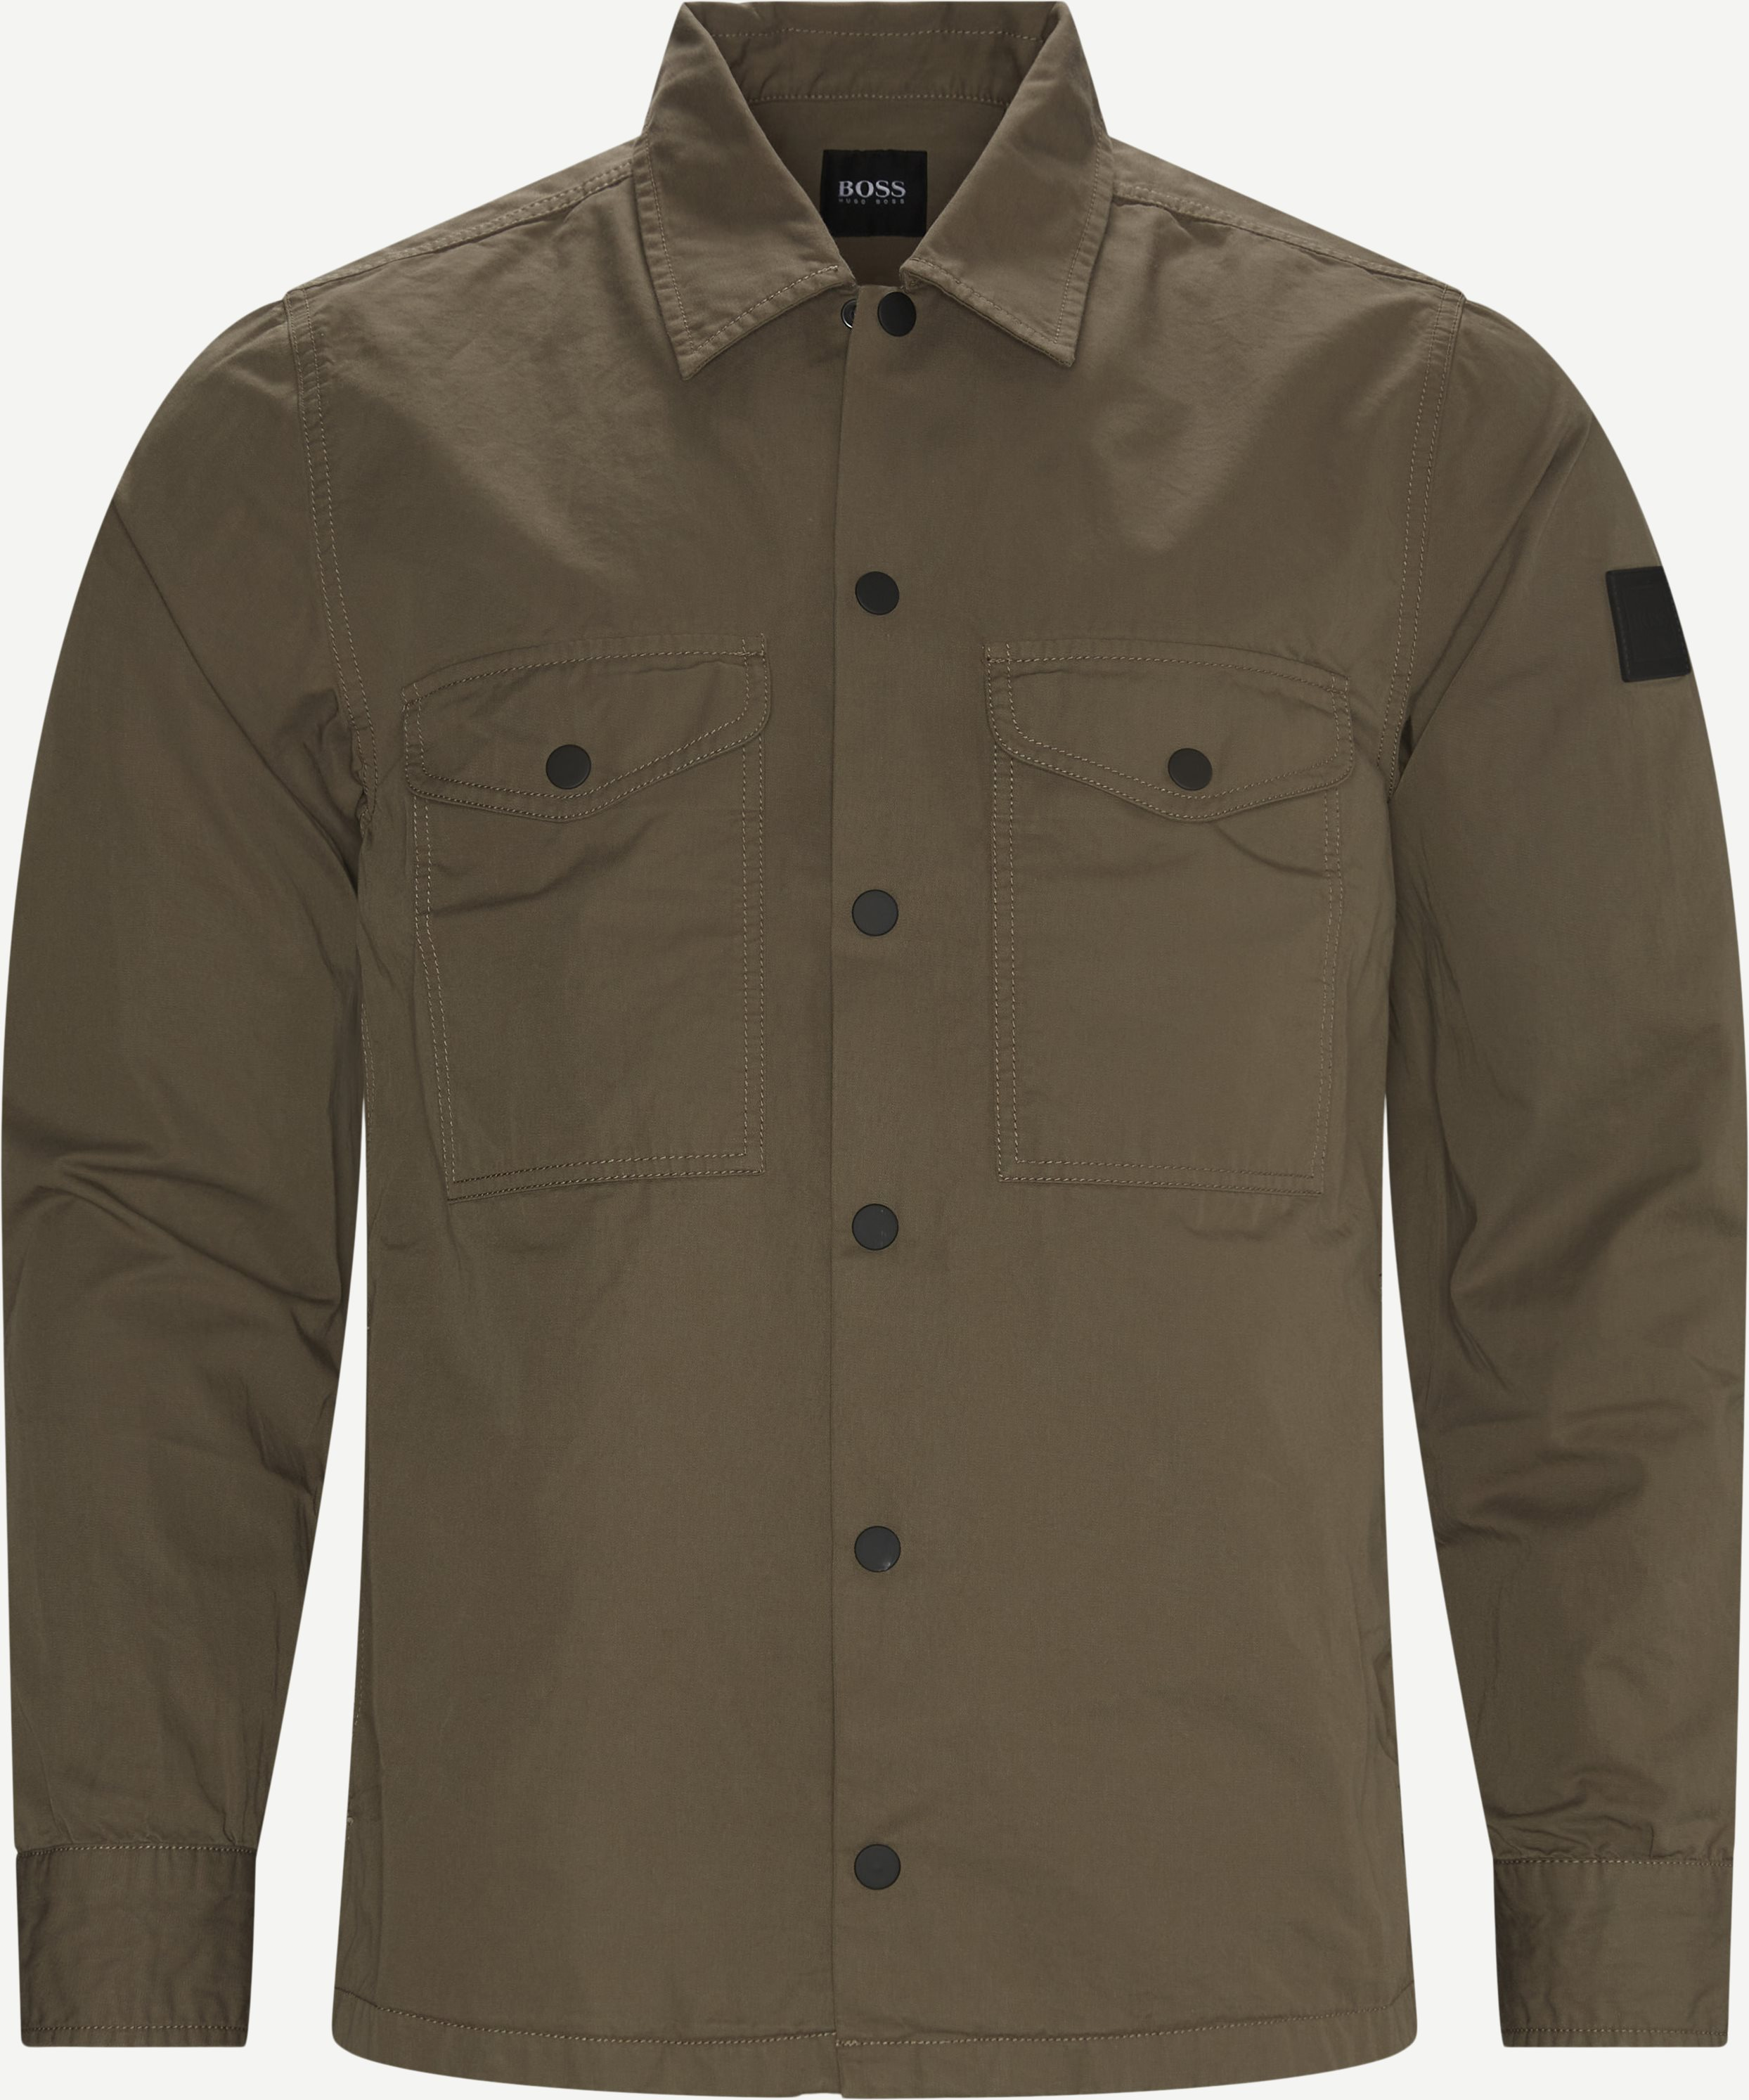 Lovel Shirt - Skjortor - Regular - Sand